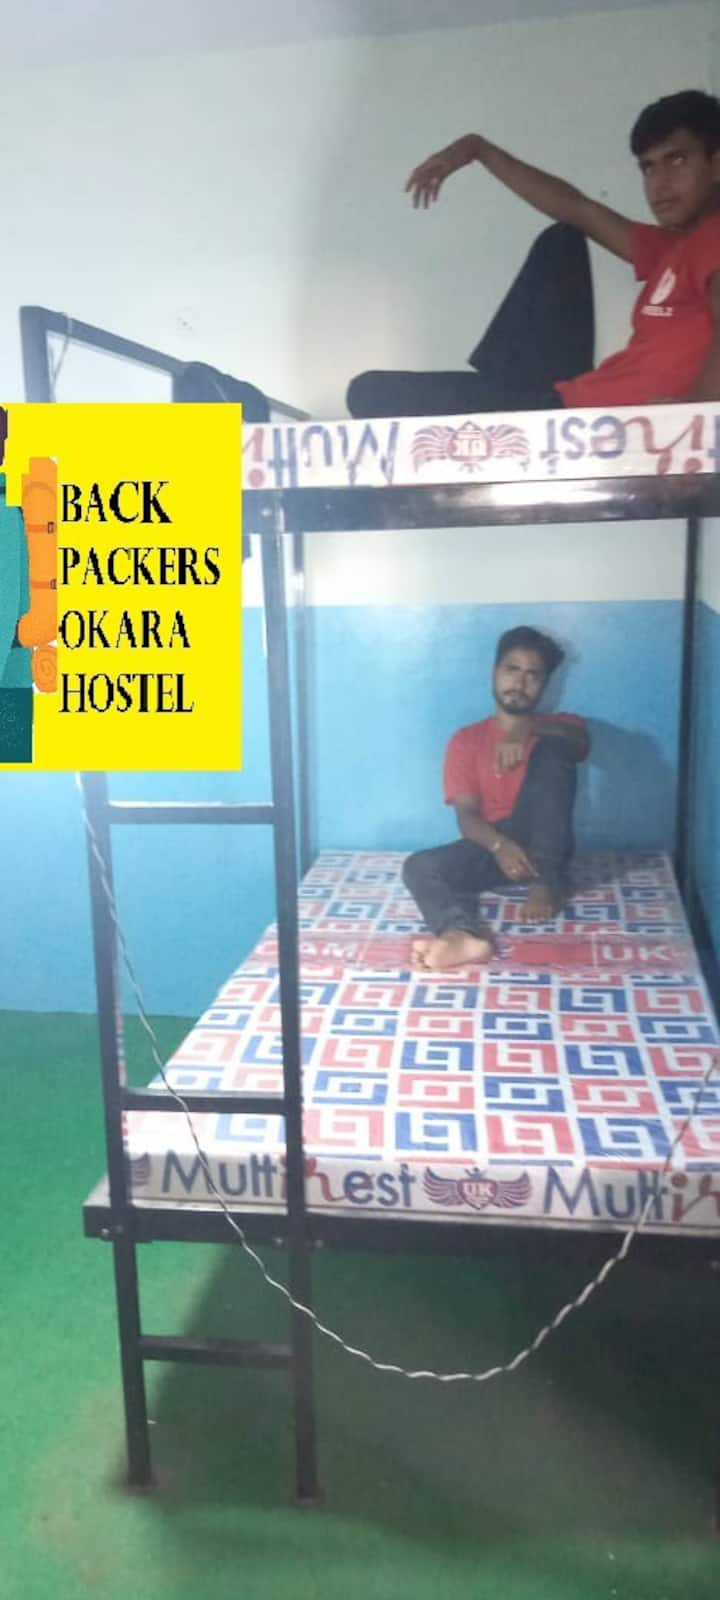 Okara Back Packers Hostel